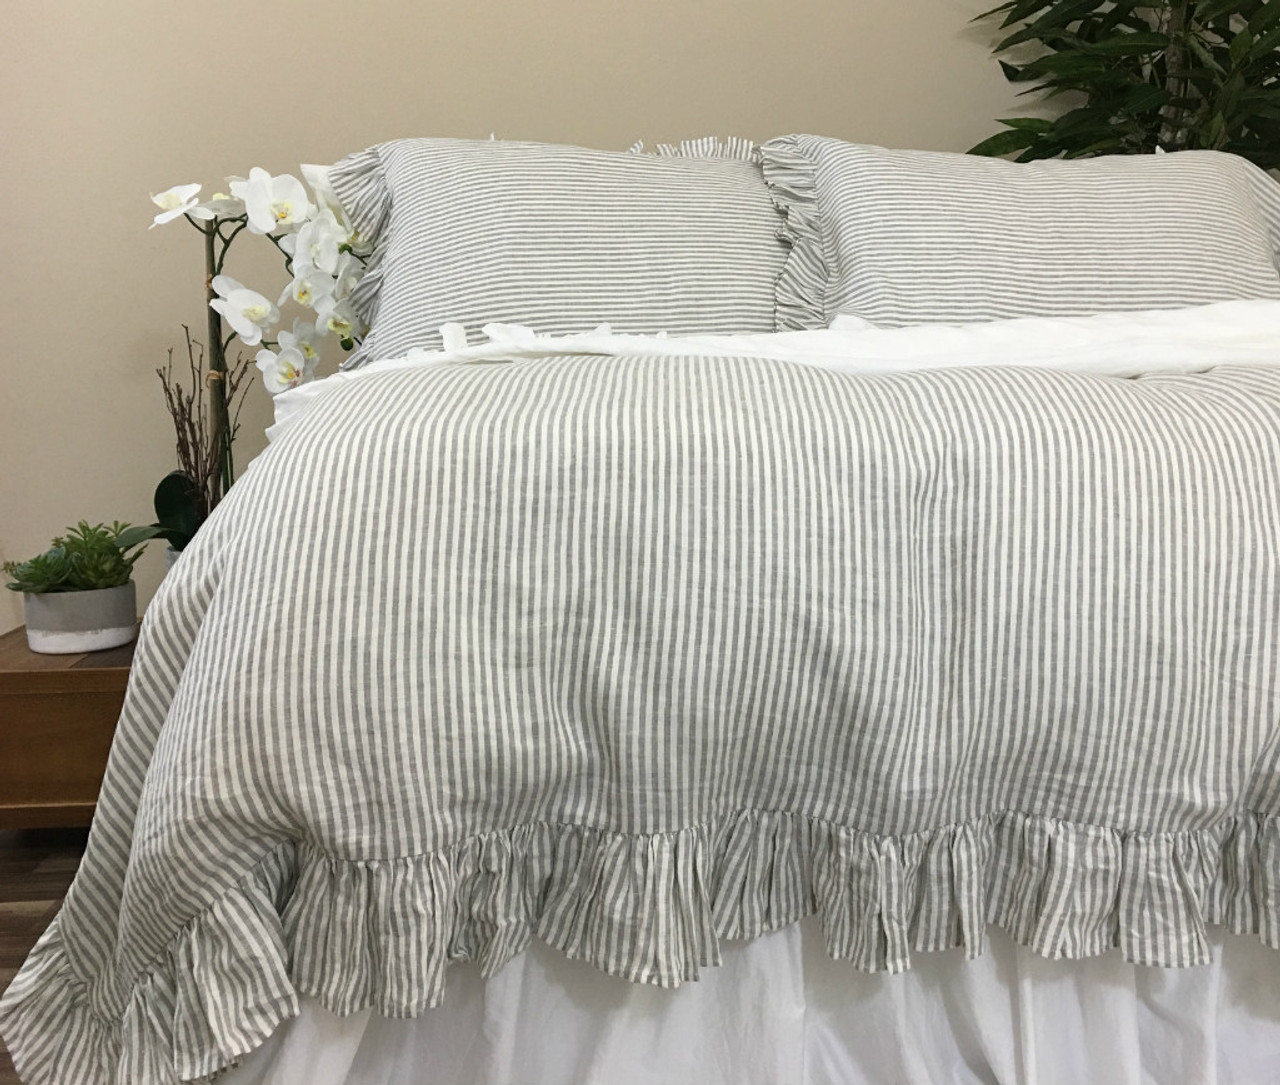 sized ruffle quilt include stunning flamenco itm ruffled care with cotton machine sets modern frilled two fabric all detailing trim easy duvet blend washable pillowcases cover fully